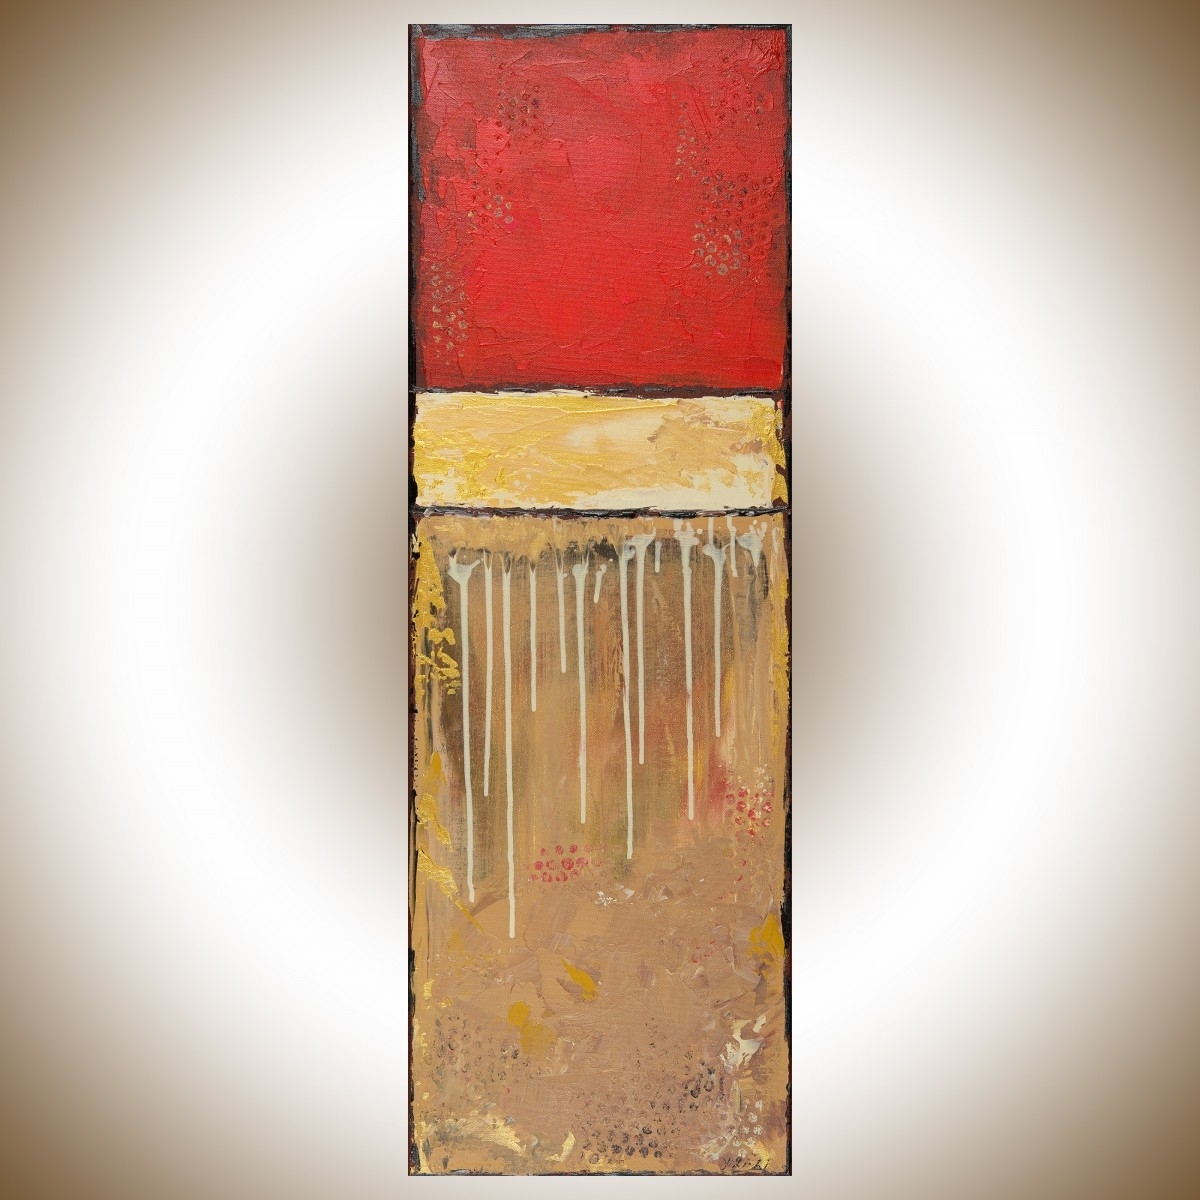 "Golden Luckqiqigallery 12"" X 36"" Original Modern Abstract Throughout Most Popular Abstract Landscape Wall Art (View 13 of 20)"